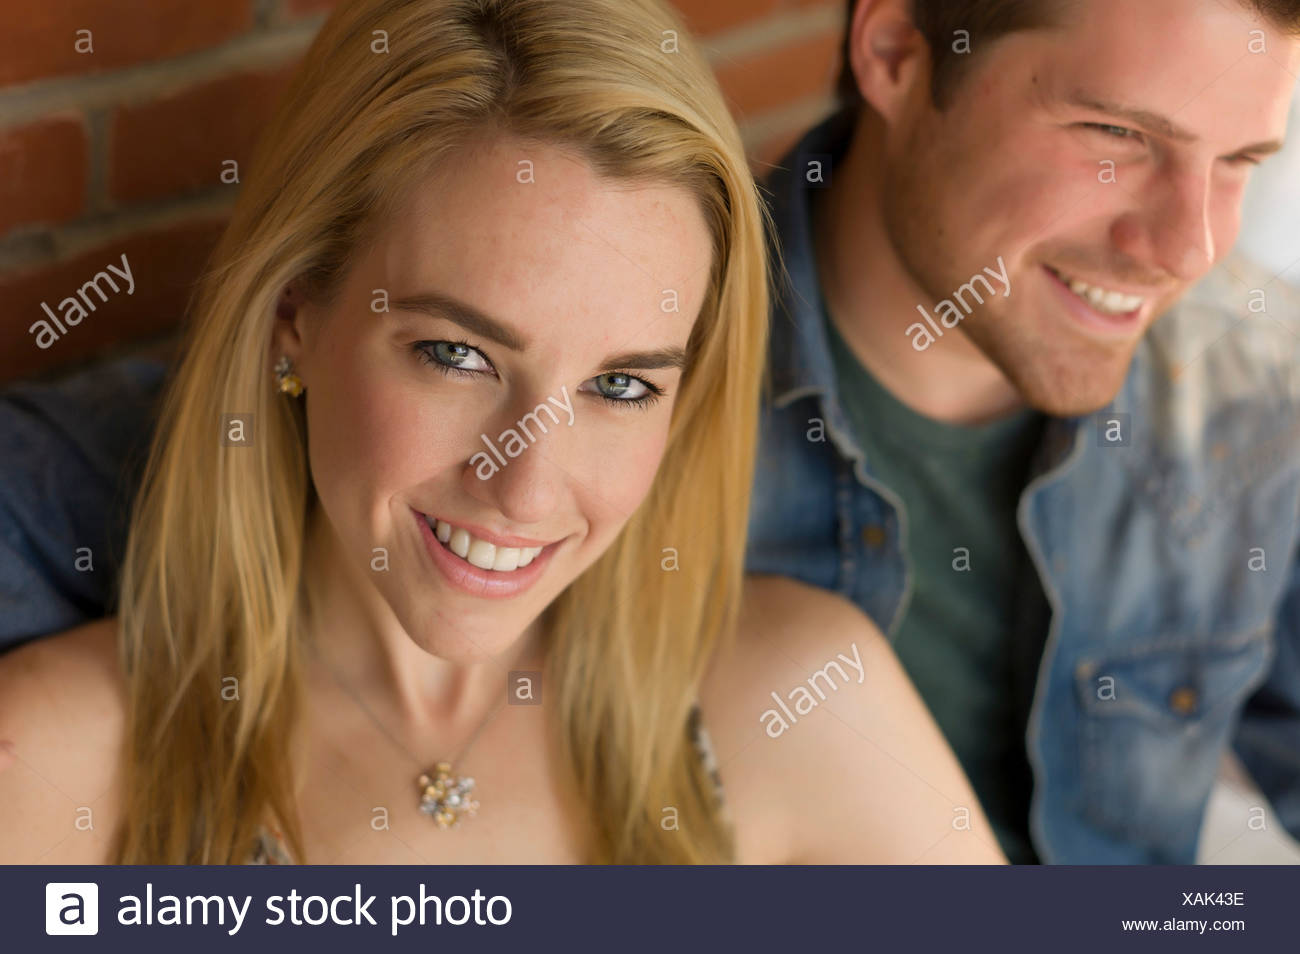 Portrait de couple, focus on young woman smiling Photo Stock